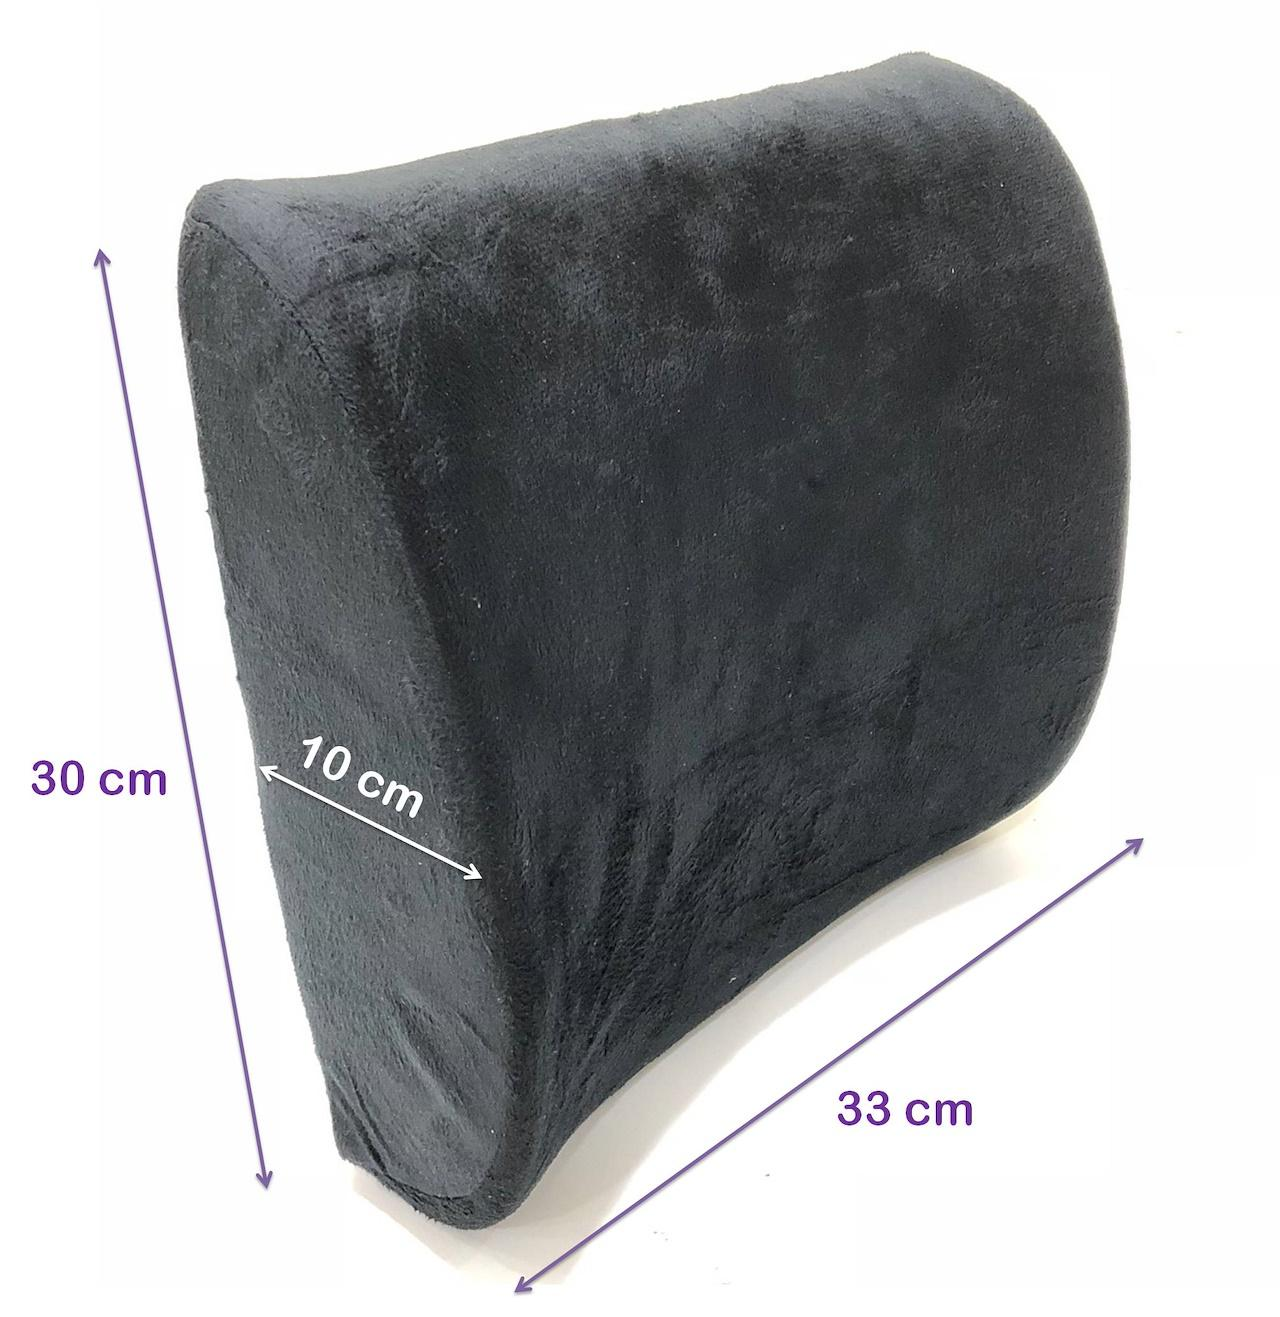 Memory foam seat hip cushion / car seat cushion / seat pad / Health care cushion for office worker